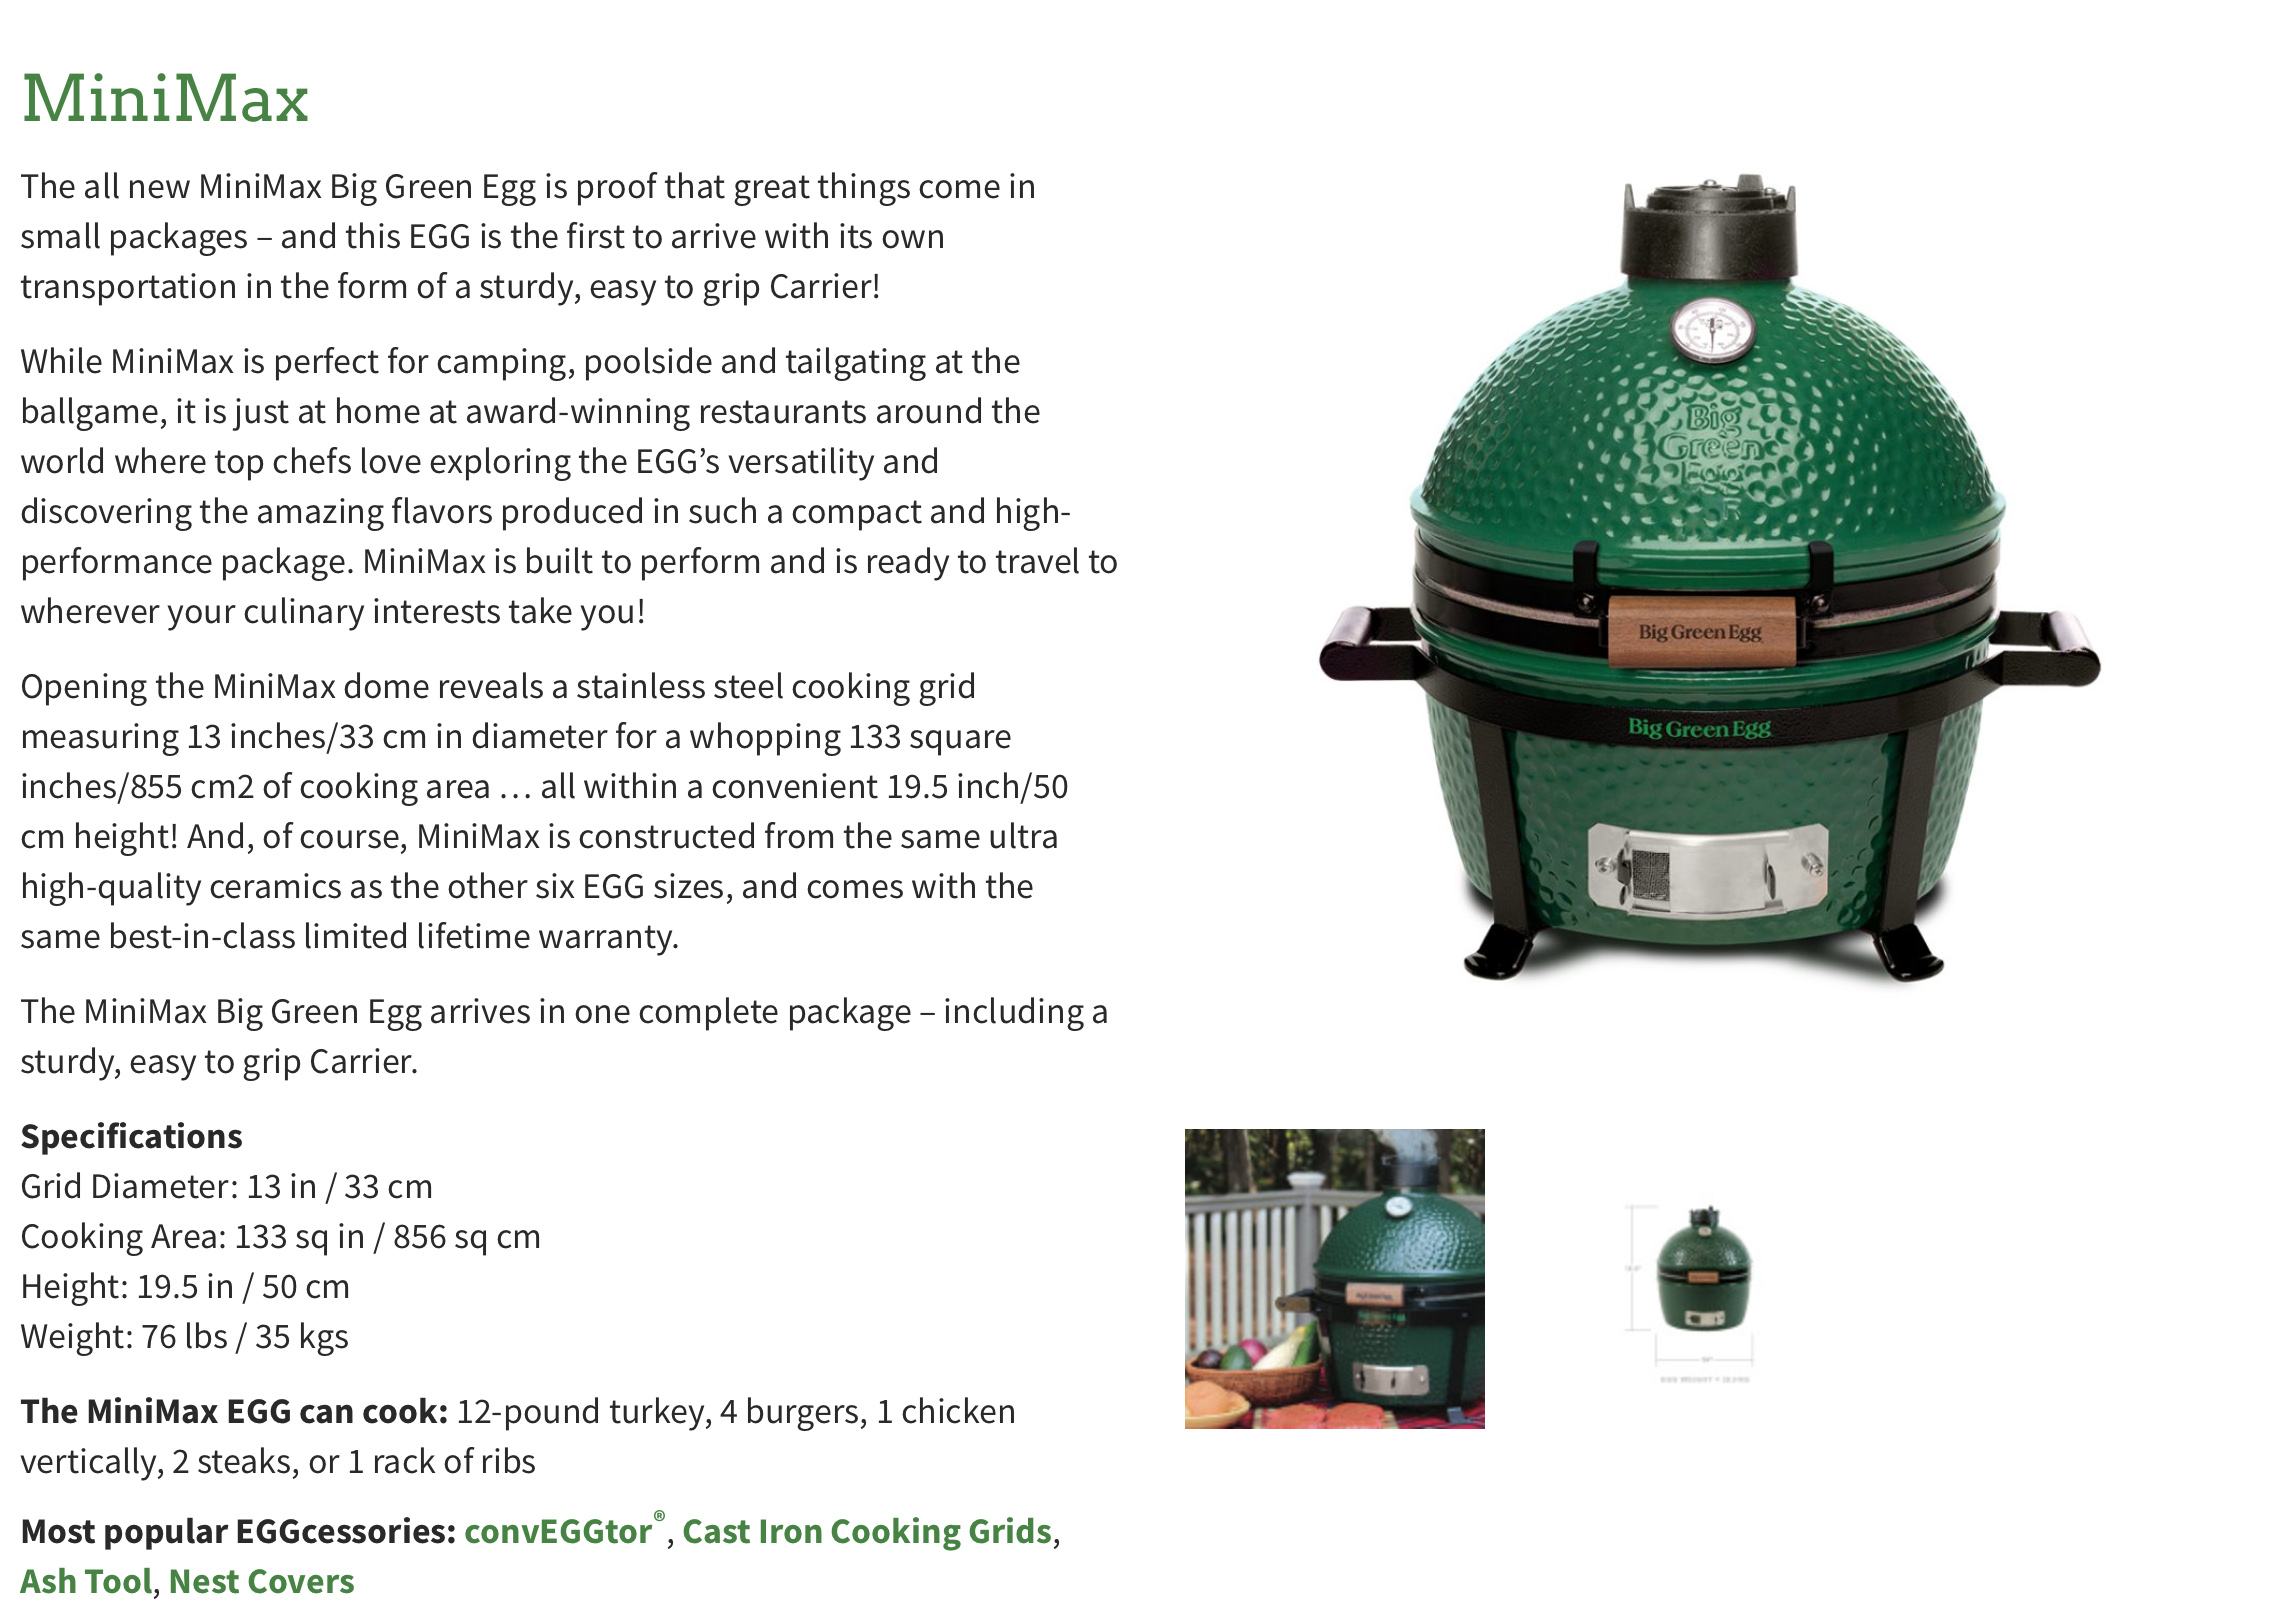 The Big Green Egg MiniMax is ideal for tailgating